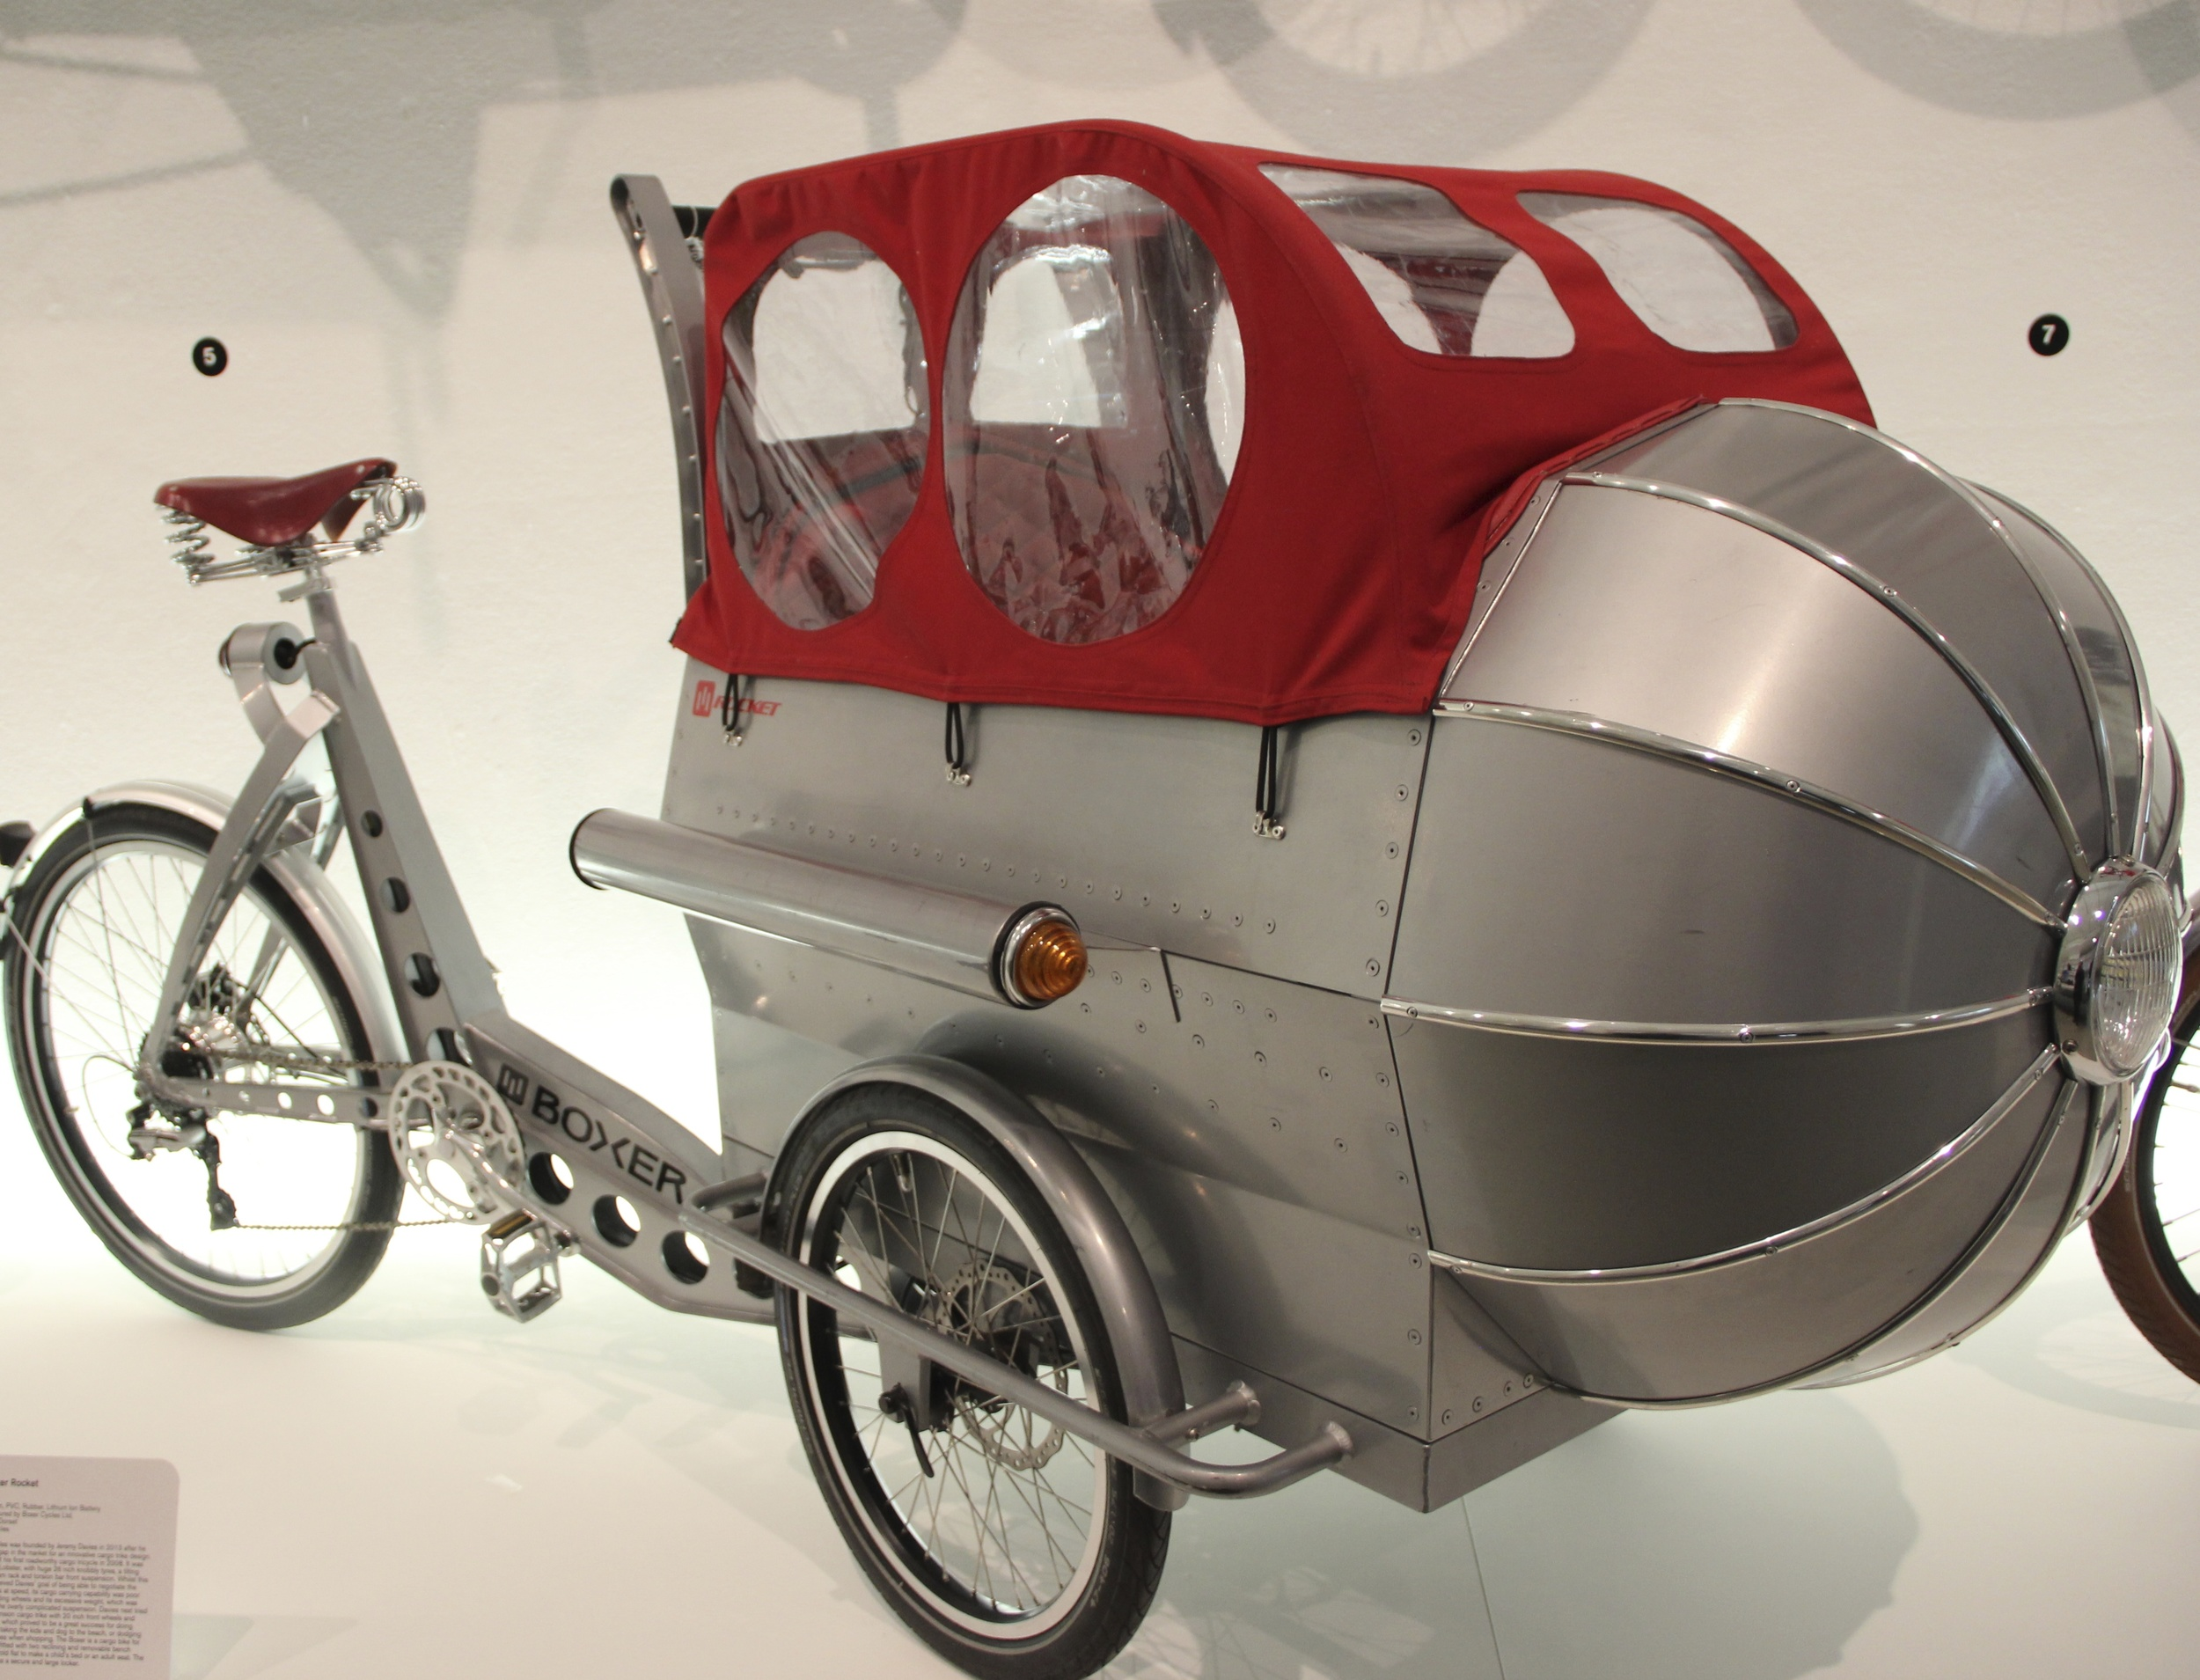 The Boxer Rocket - custom made for £4,950